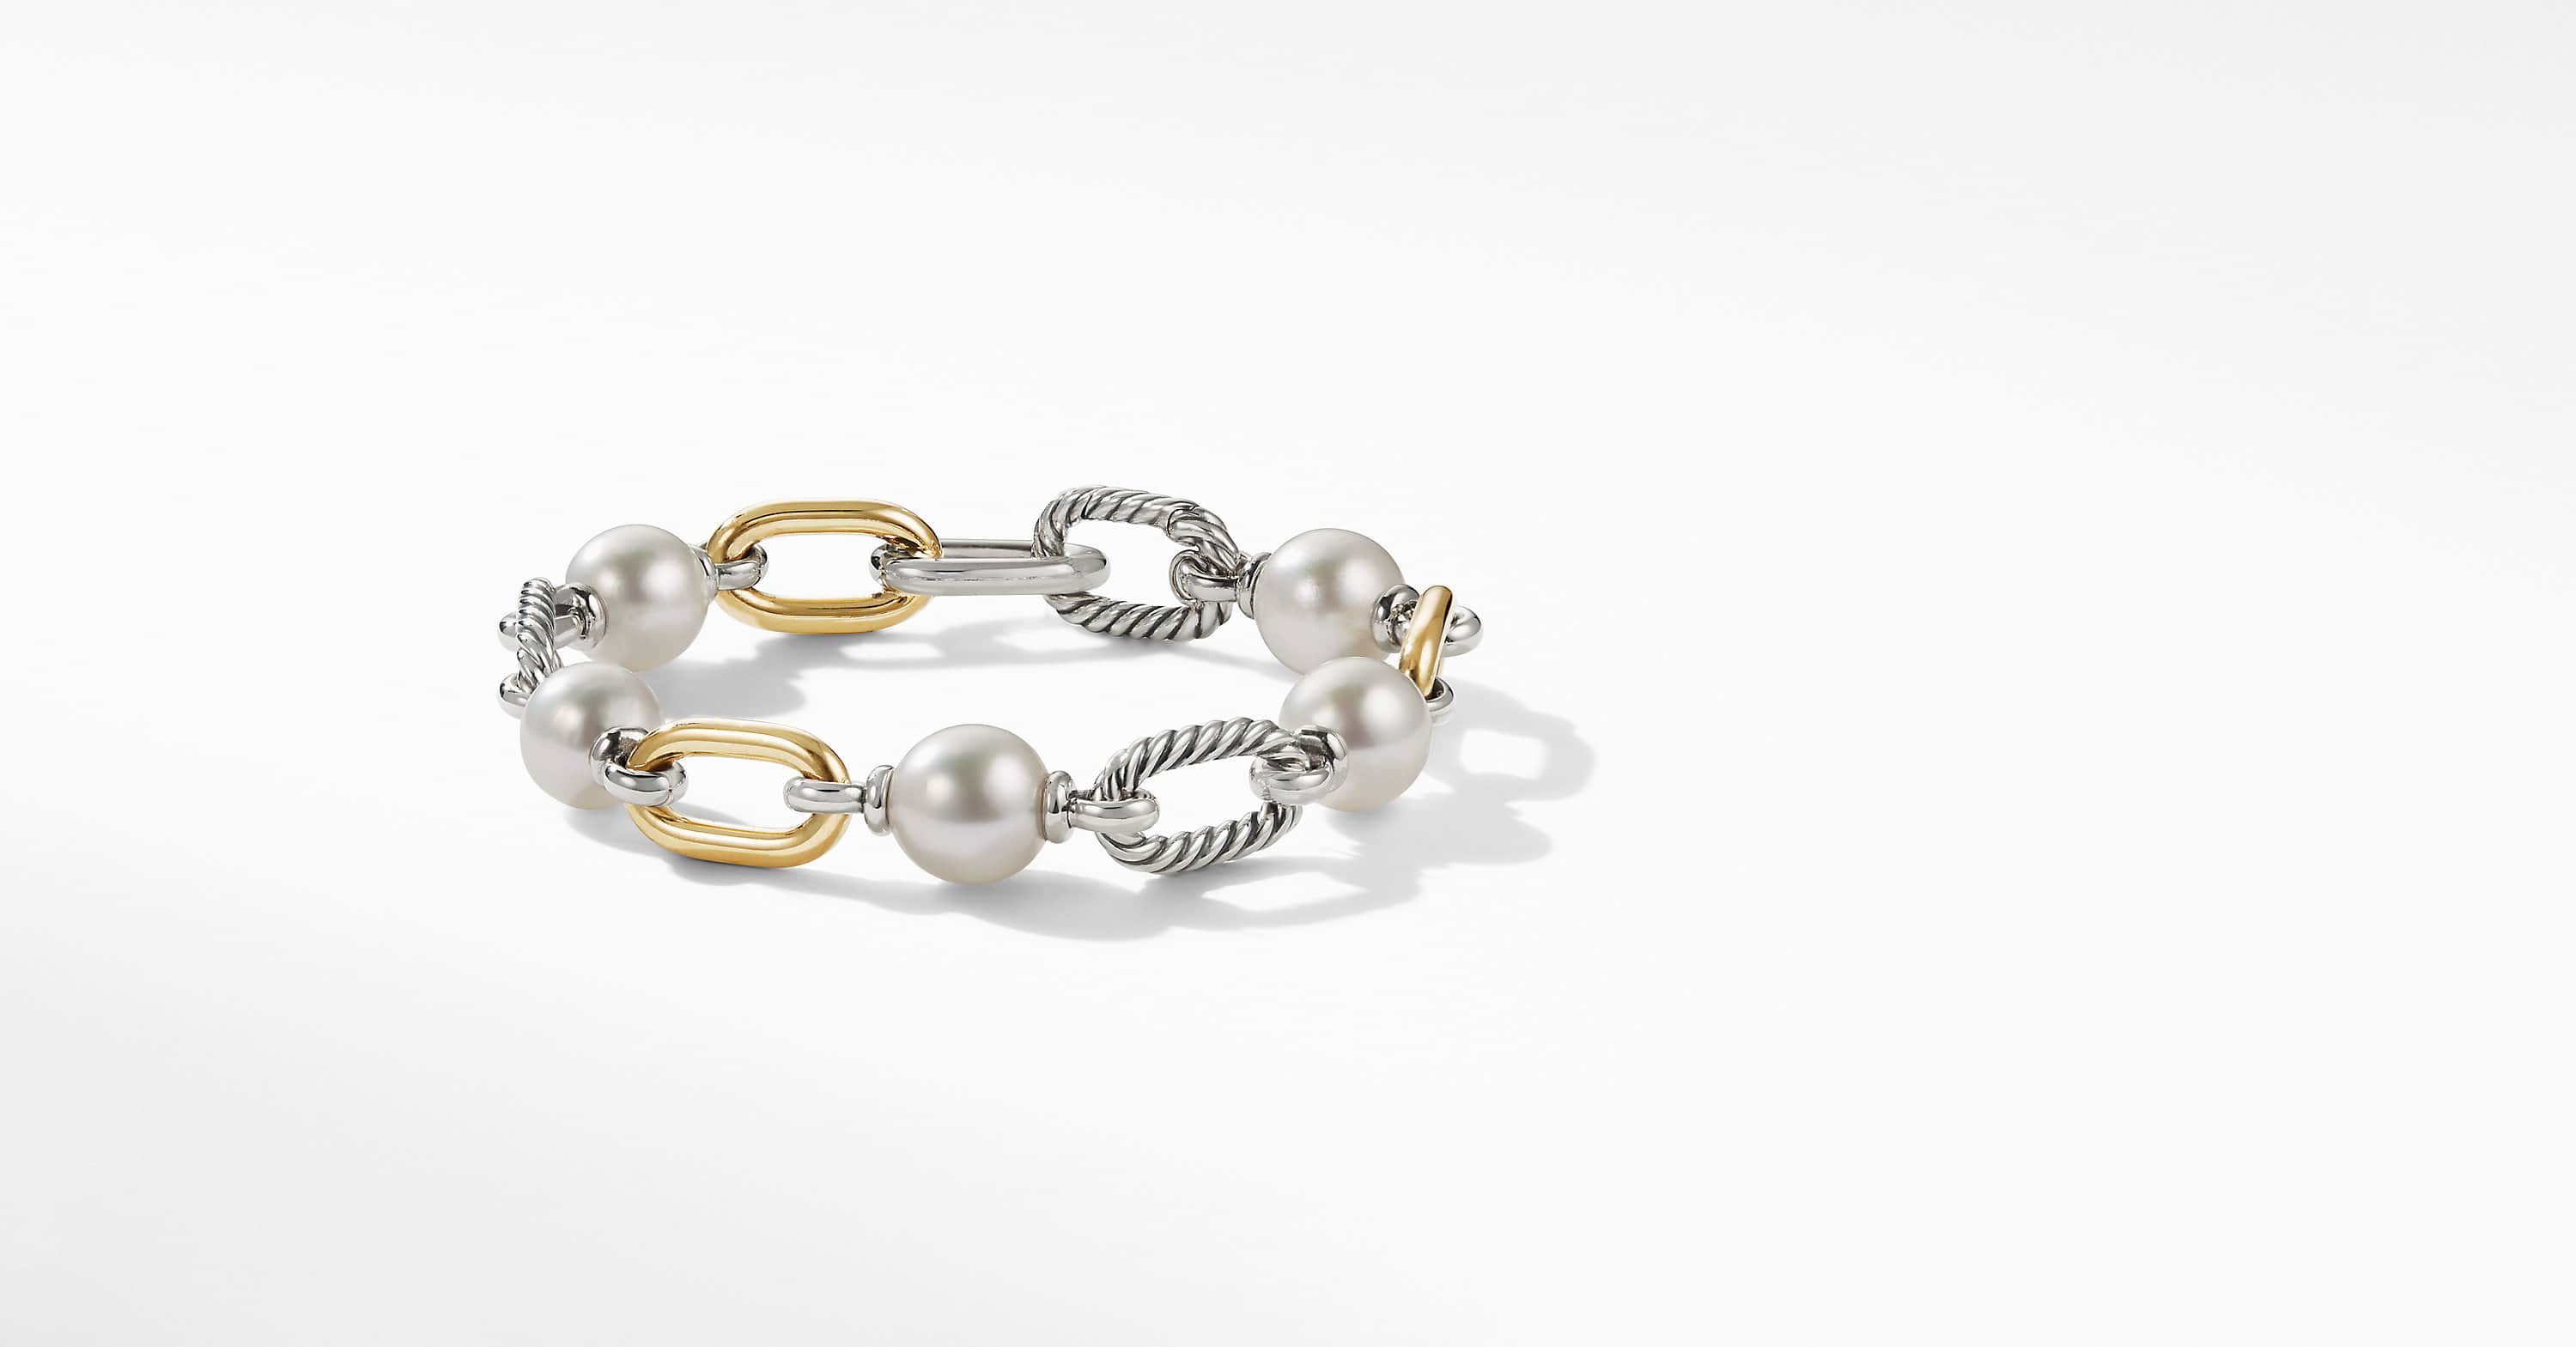 DY Madison Pearl Chain Bracelet with 18K Yellow Gold